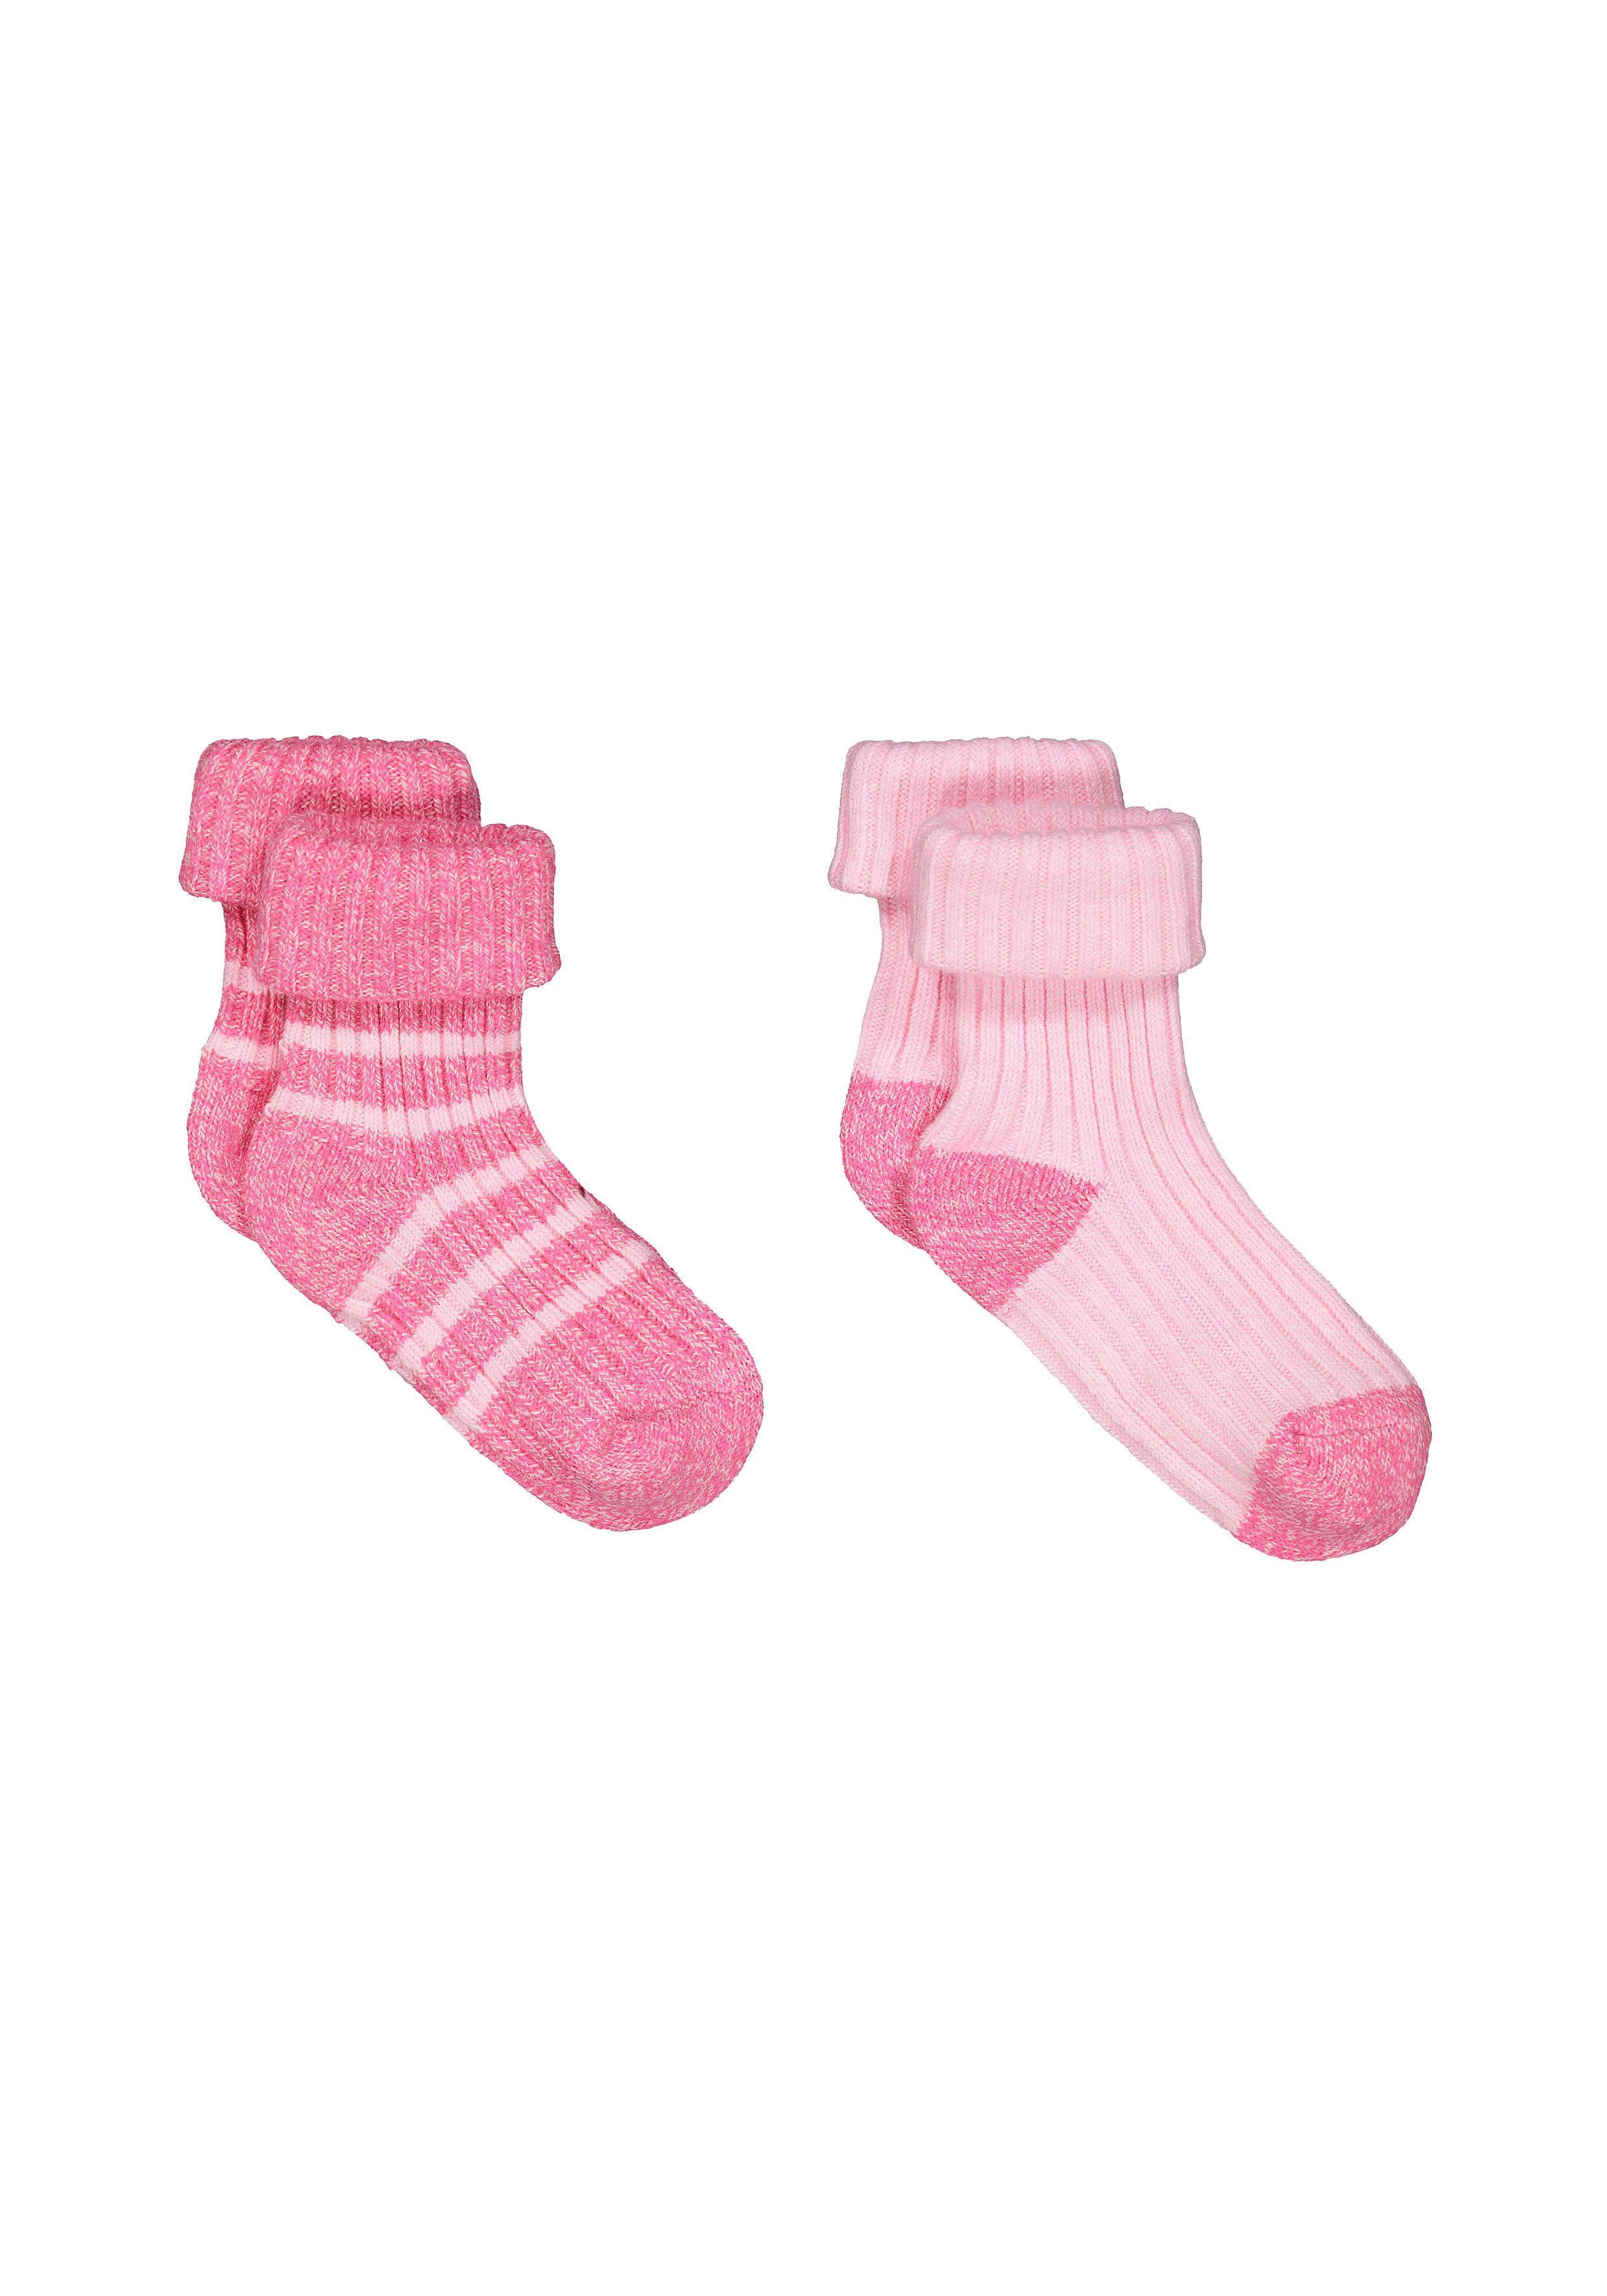 Mothercare | Girls Pink Boot Socks - 2 Pack - Pink